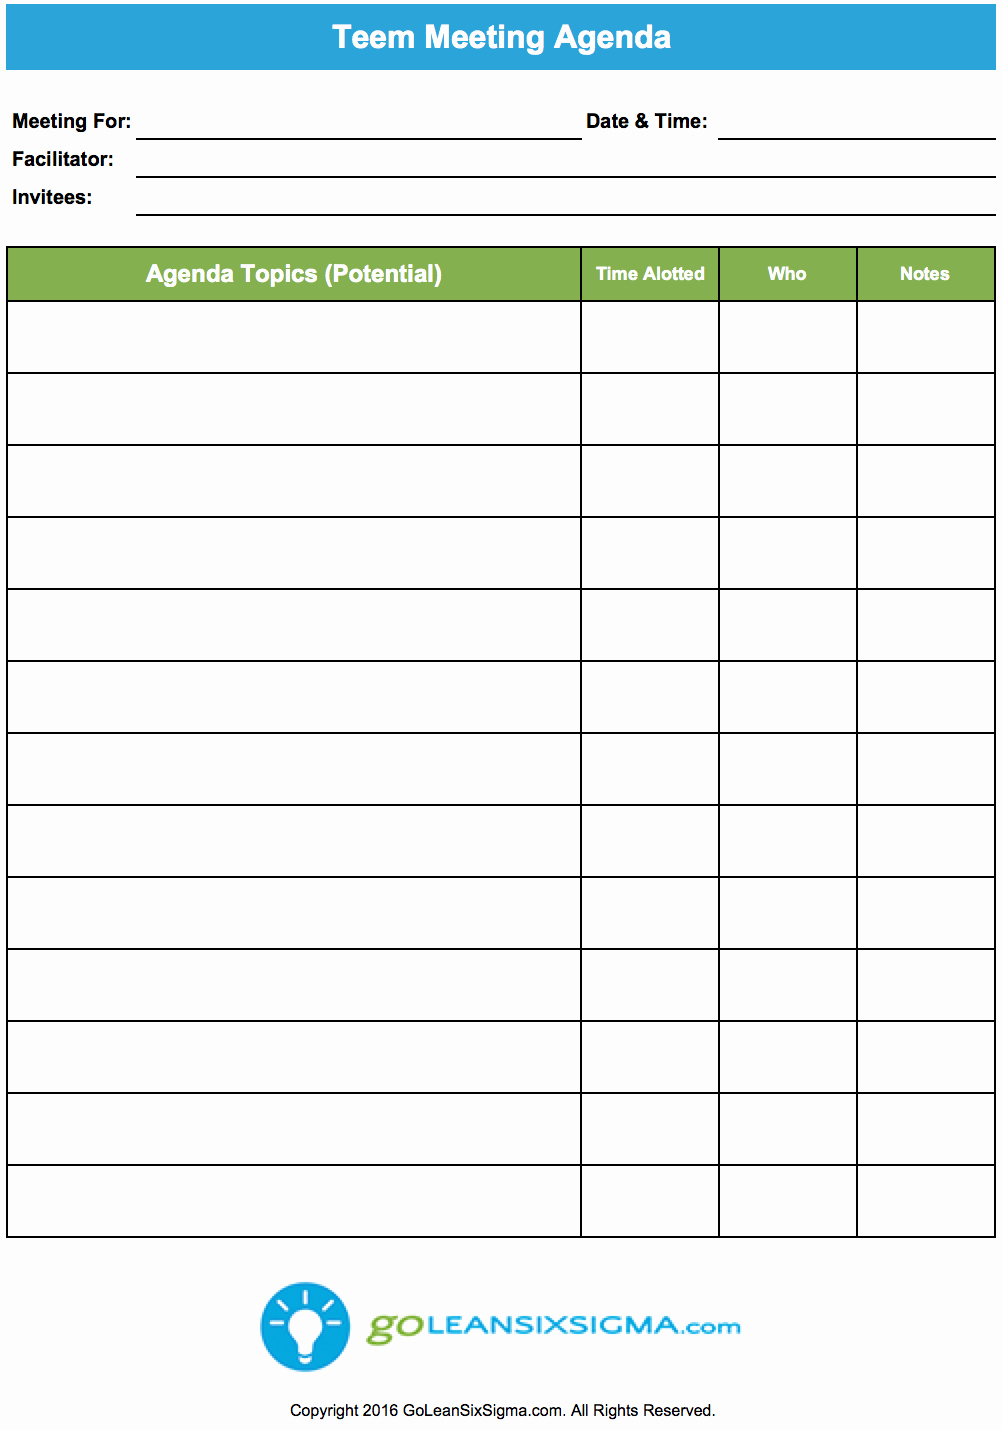 Team Meeting Agenda Template Elegant Team Meeting Agenda Goleansixsigma